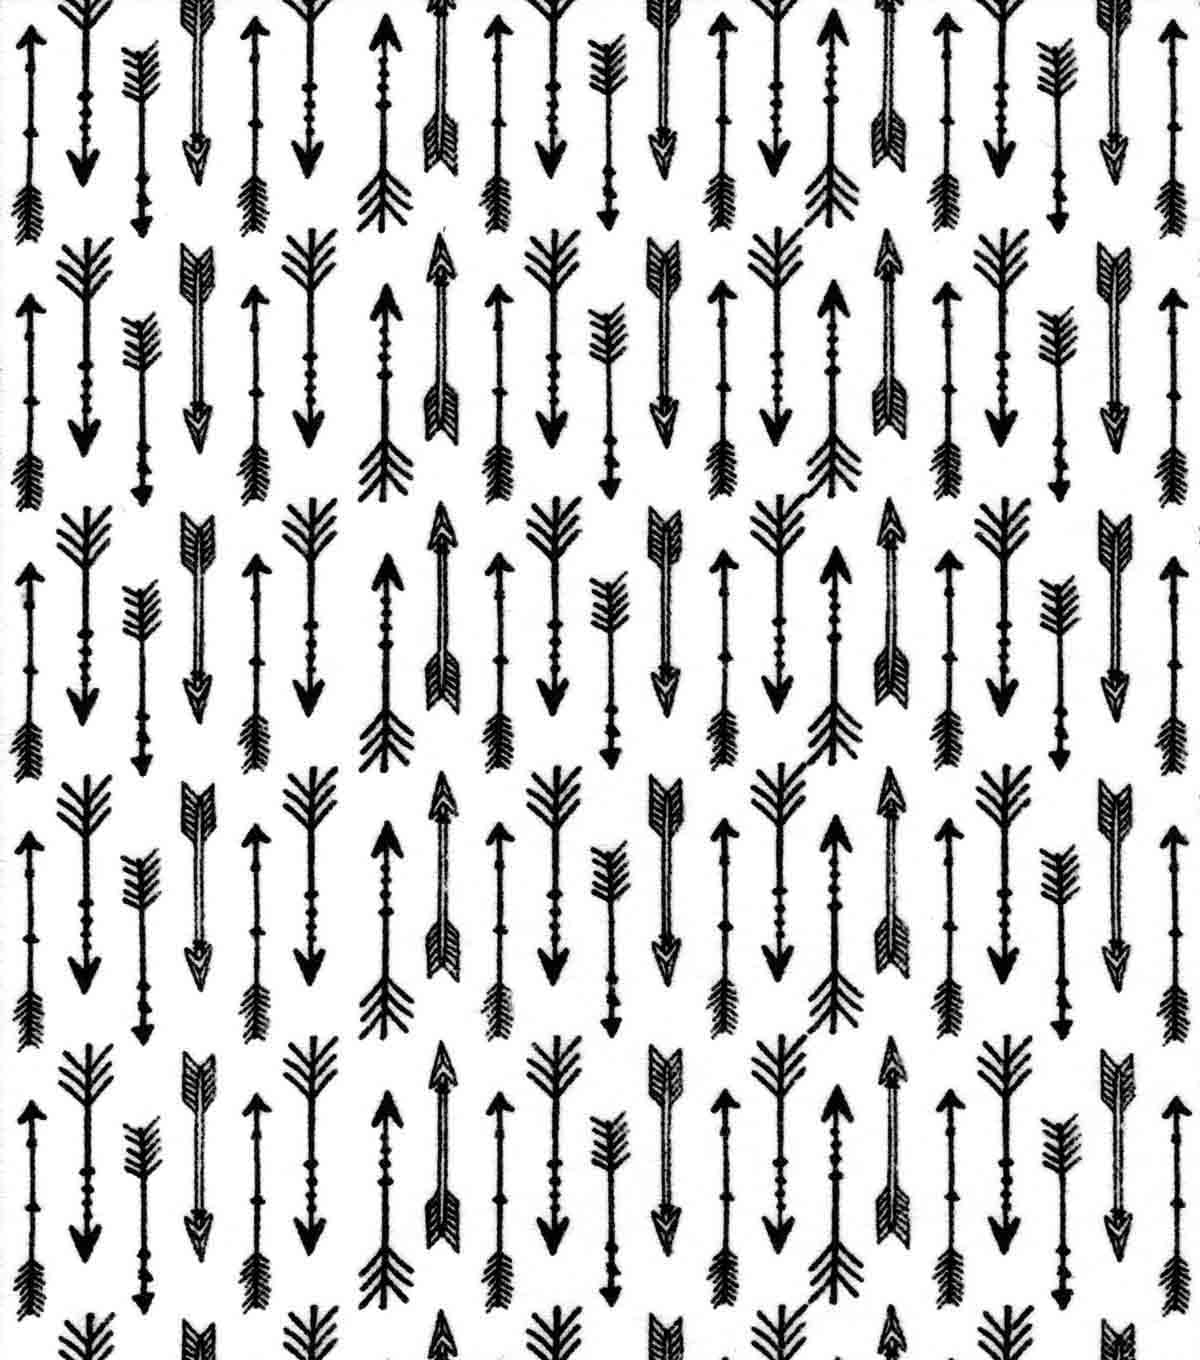 Nursery Flannel Fabric 42\u0027\u0027-Black Arrows on White